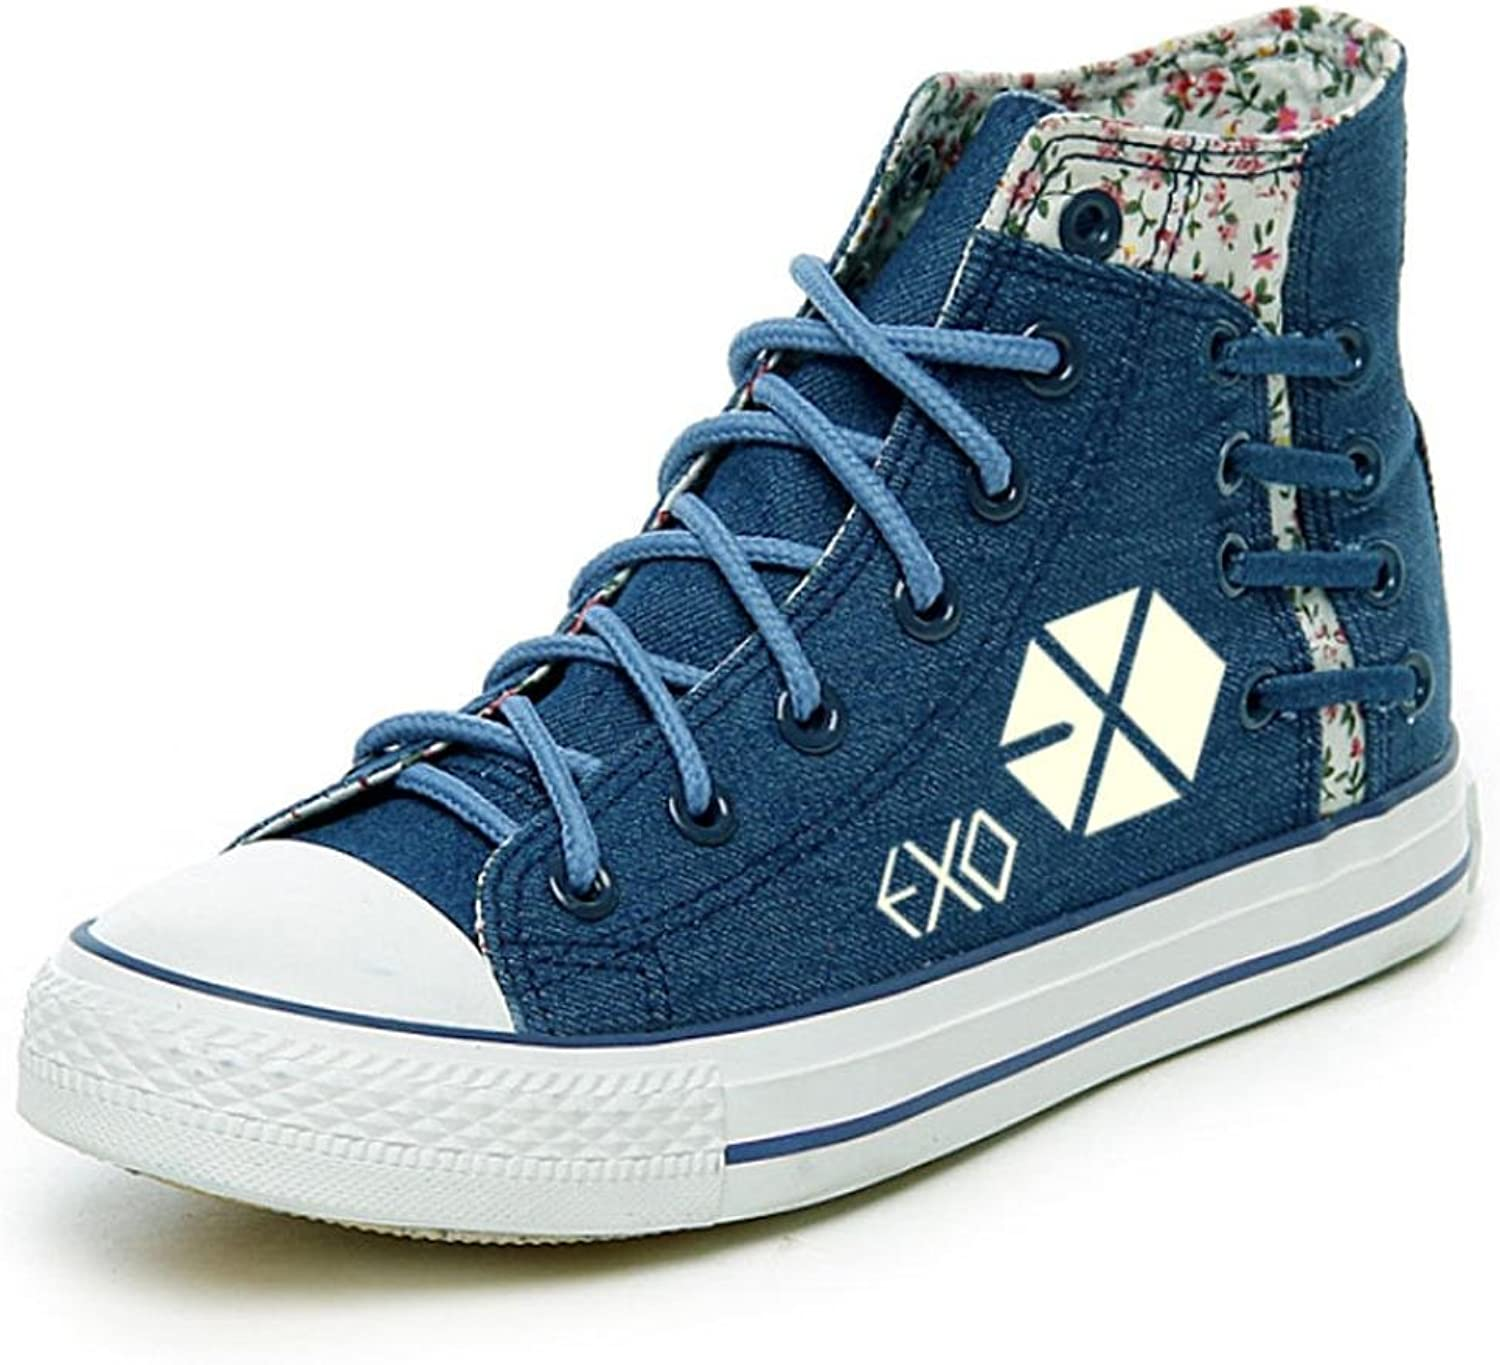 XUEXIN Autumn School of luminous hand-painted shoes shoes casual shoes high canvas at the end of the students ' shoes